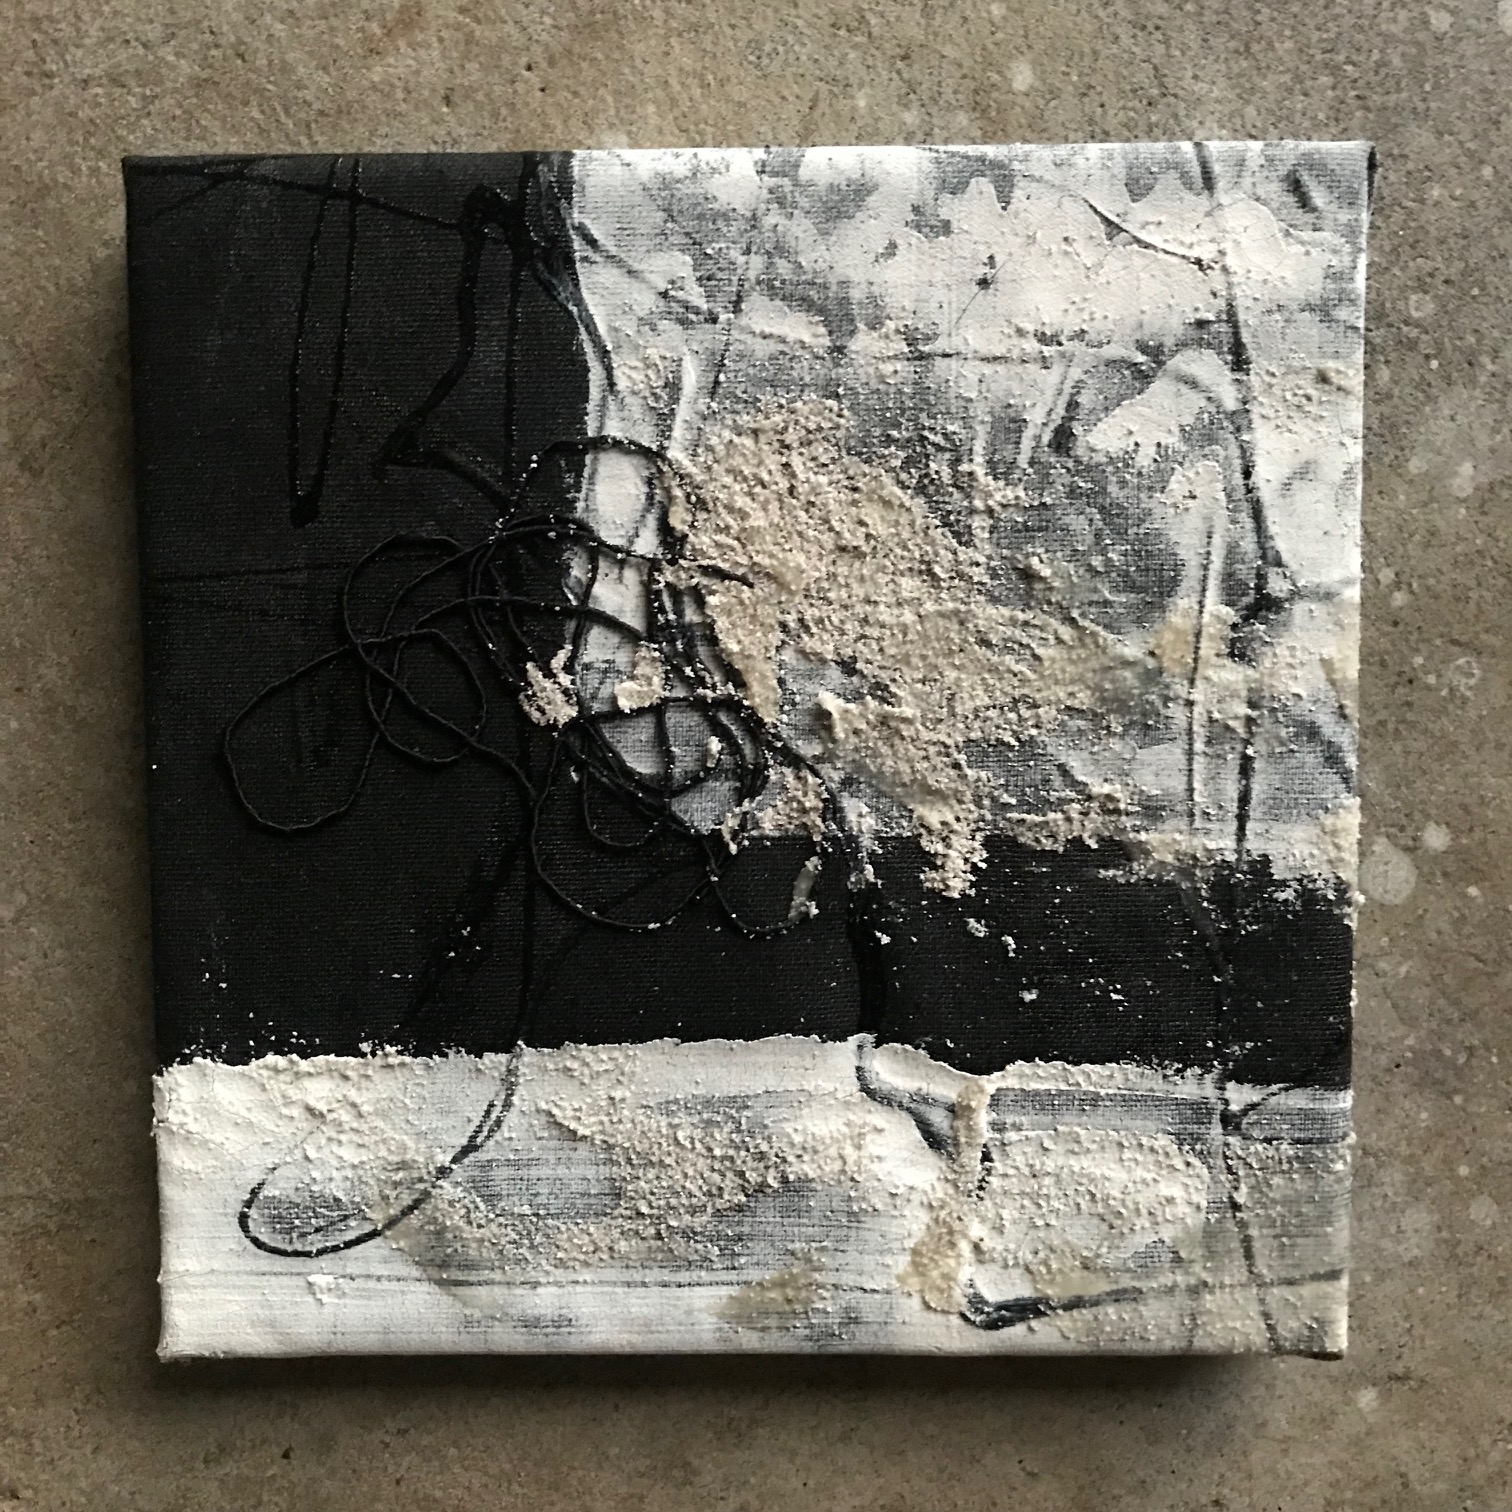 "Artifact (night of truth), 8"" x 8"", mixed media (fiber, acrylic, paint), 2018"